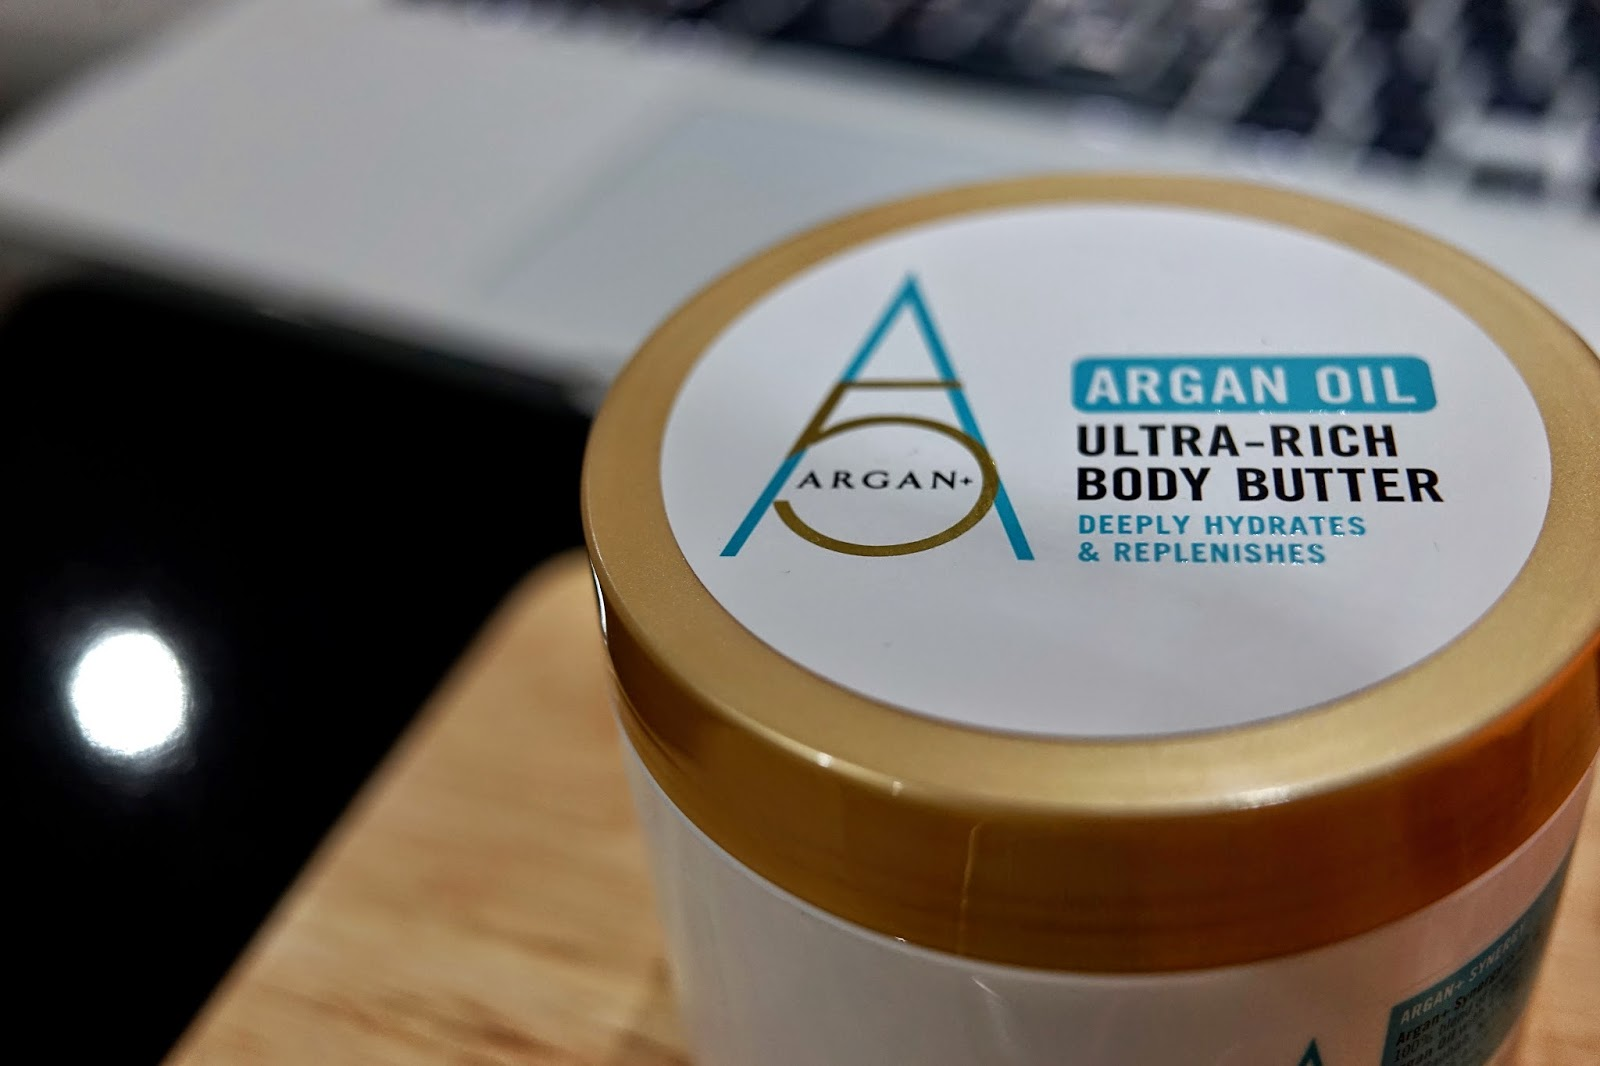 argan 5 ultra-rich body butter